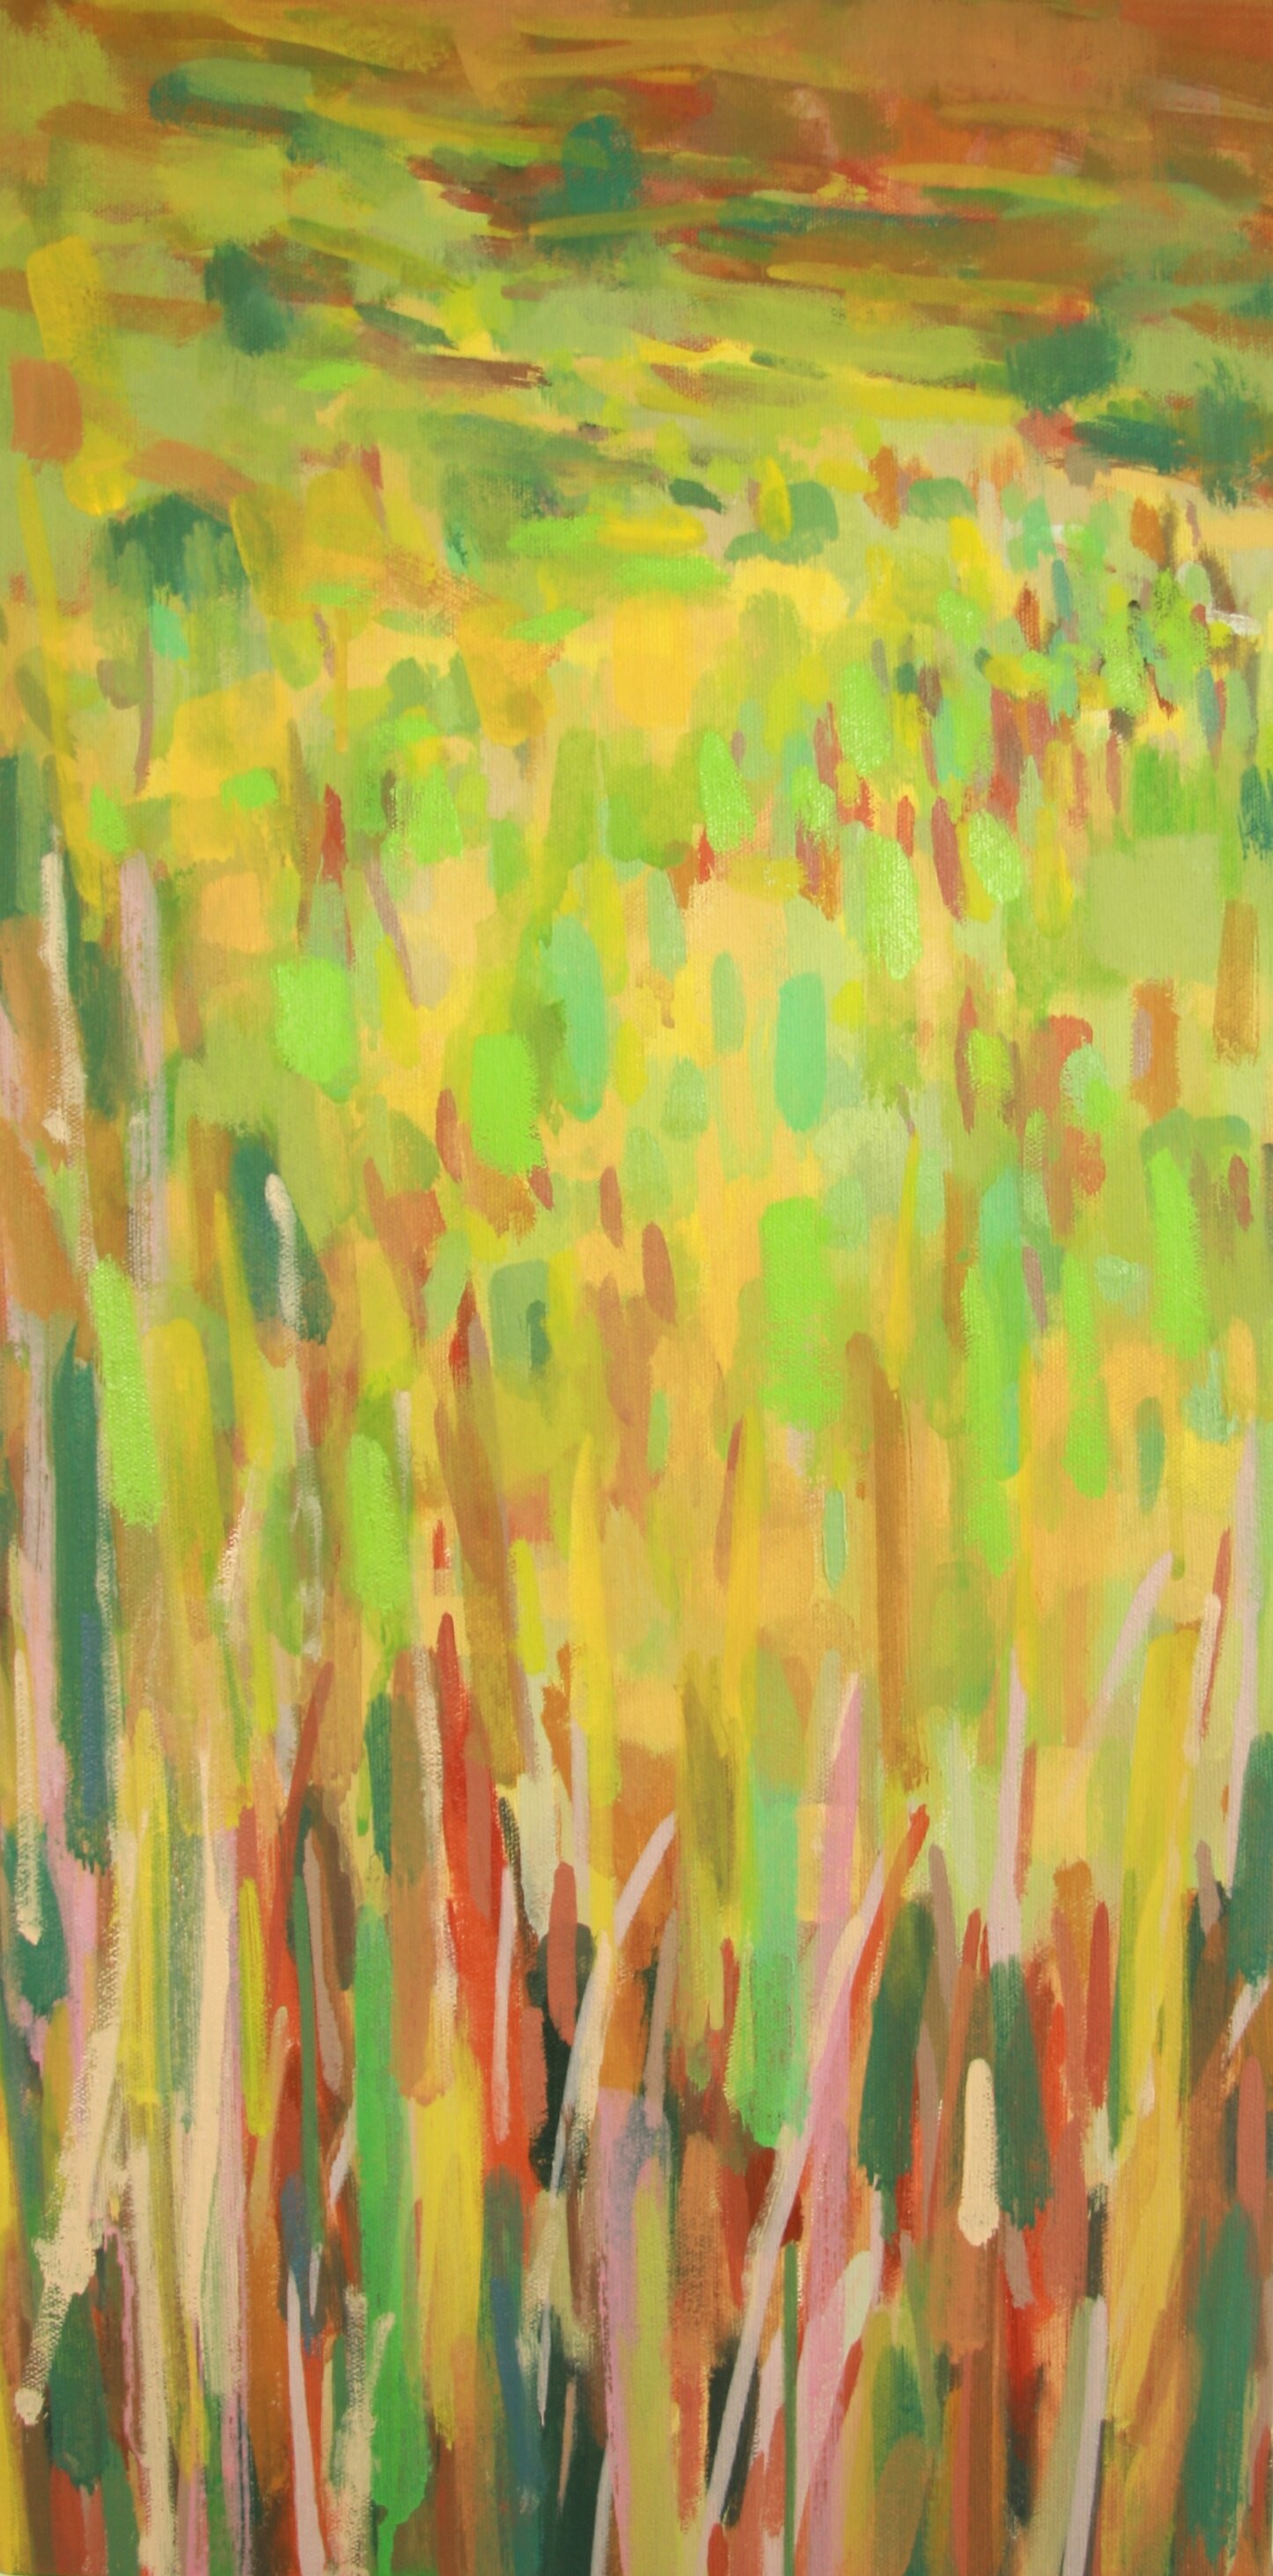 """'Meadow'  2013  12"""" x 24""""  water soluble oil on canvas  sold"""